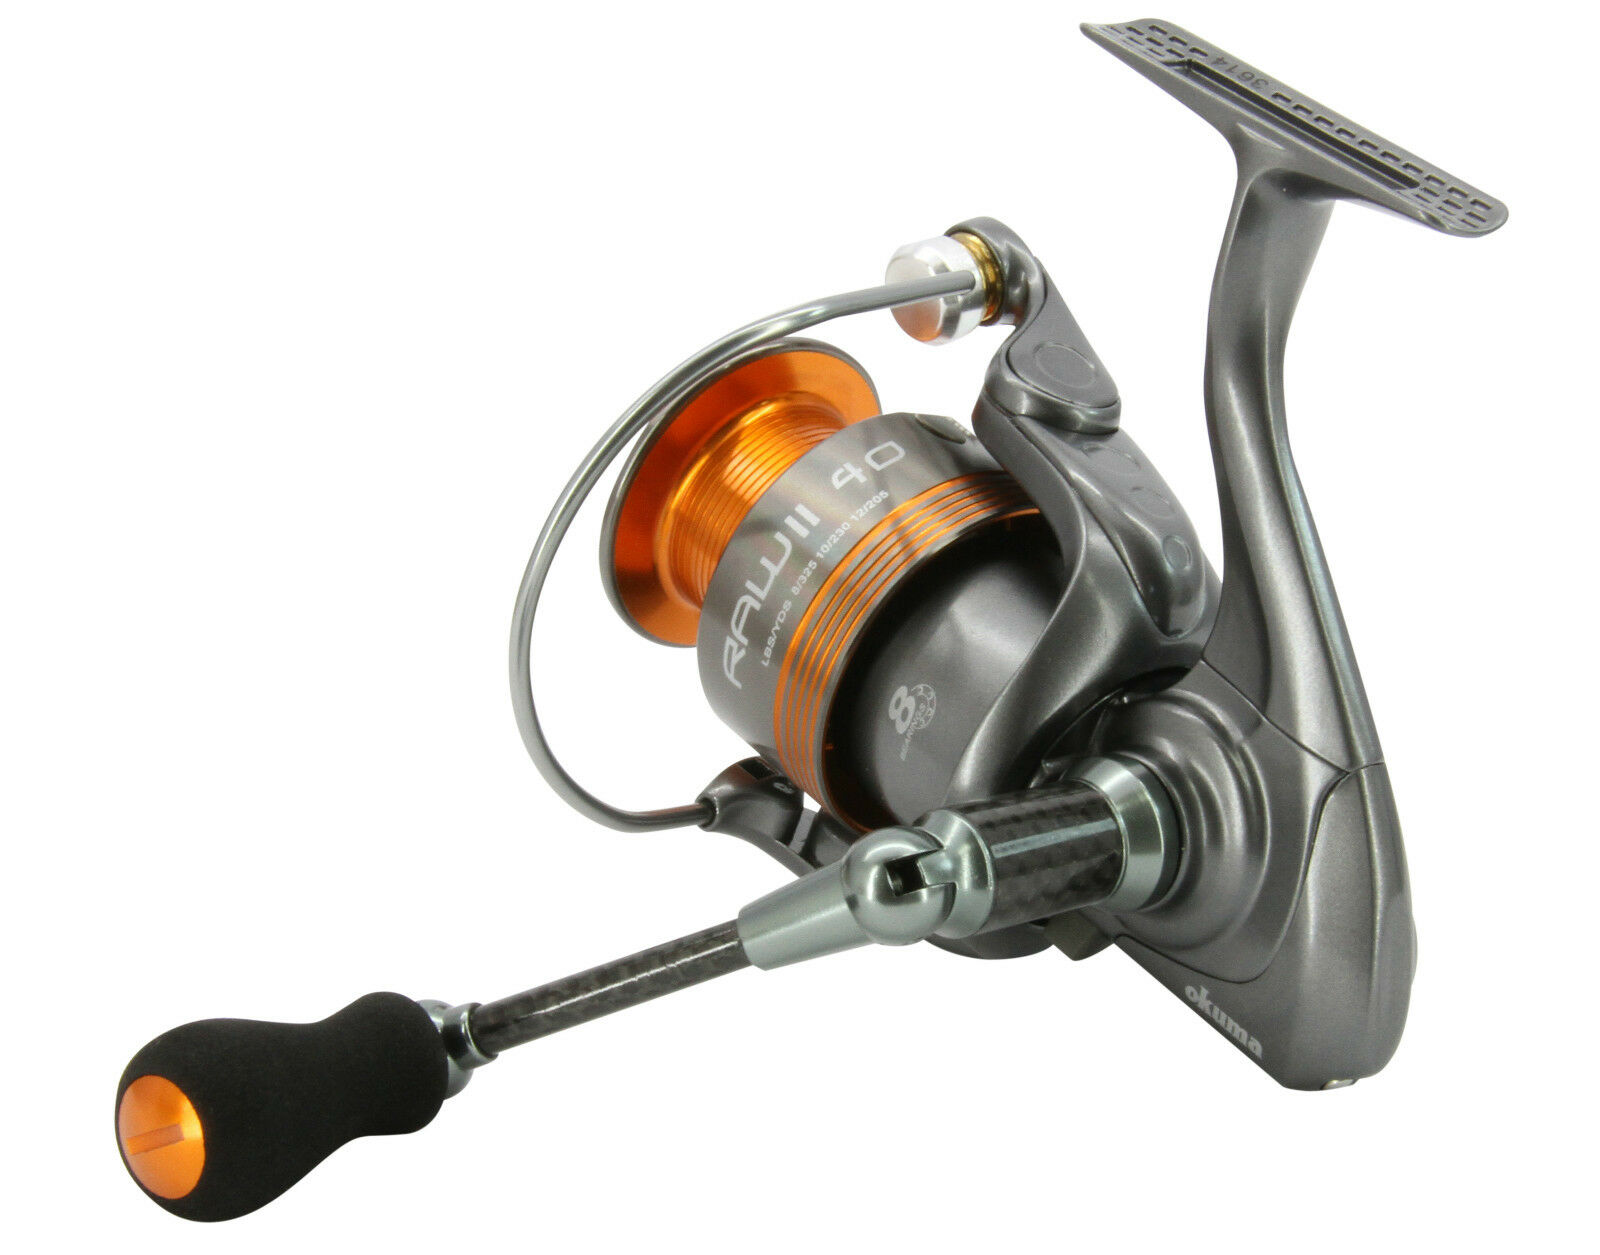 OKUMA RAW II 30 FISHING REEL MATCH SPIN REEL SEA SHOT PIER BEACH DROP SHOT SEA BASS PIKE 960a2e